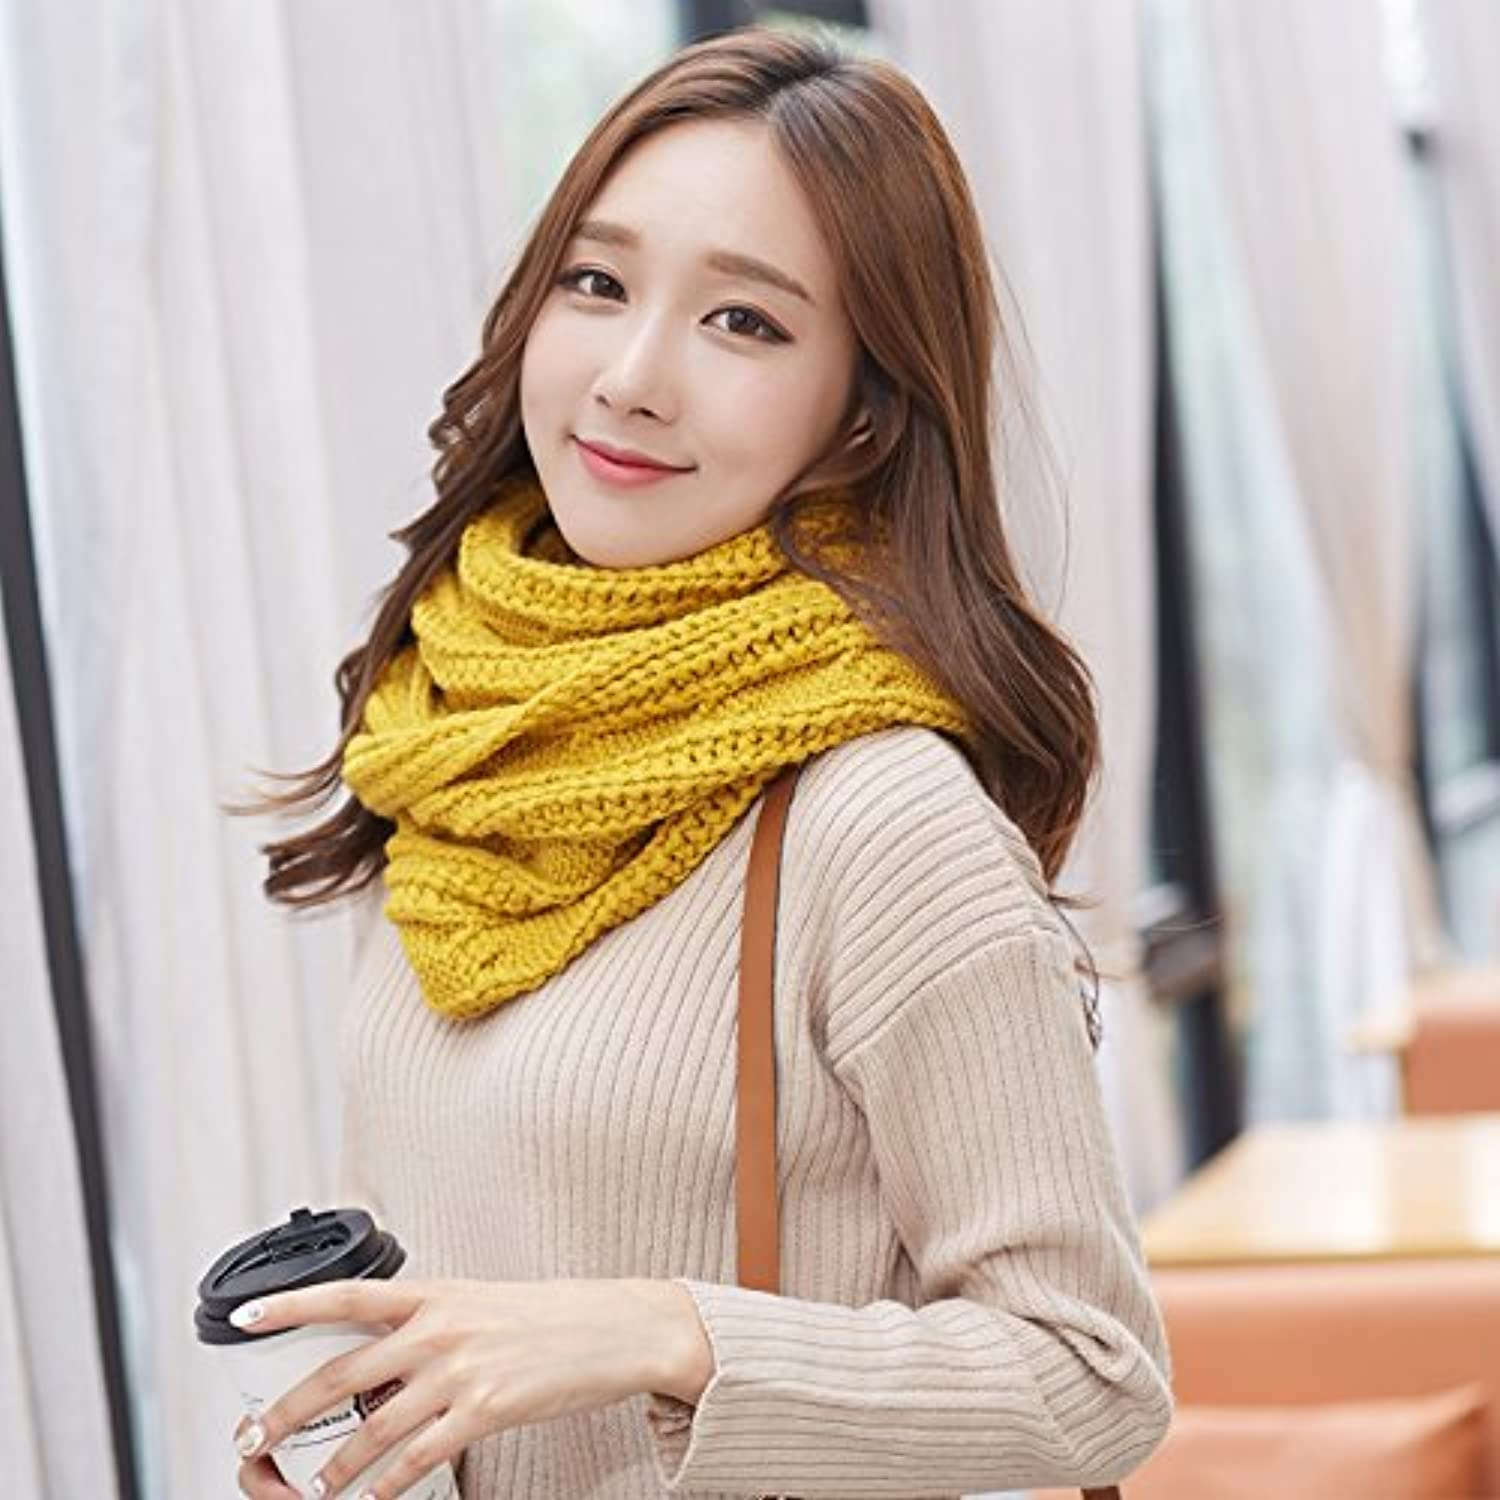 DIDIDD Female Collar Collar Double Thick Scarf Knitted Winter